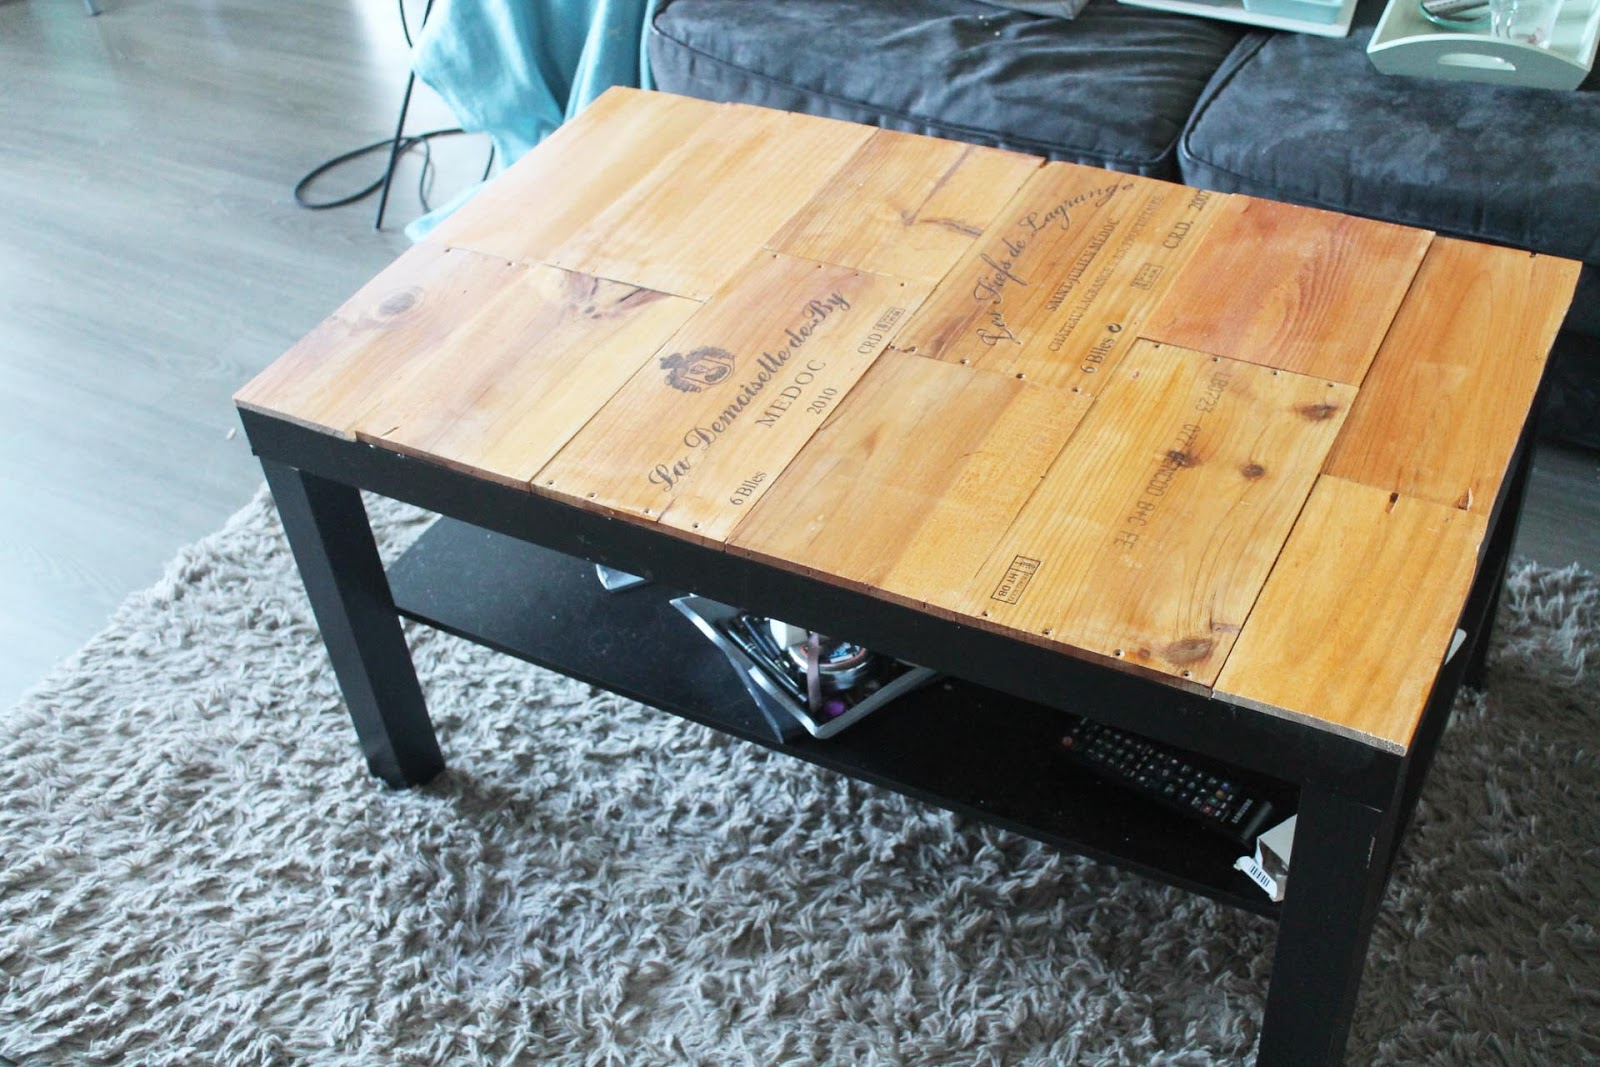 Customiser une table basse en bois - Customiser une table basse ...